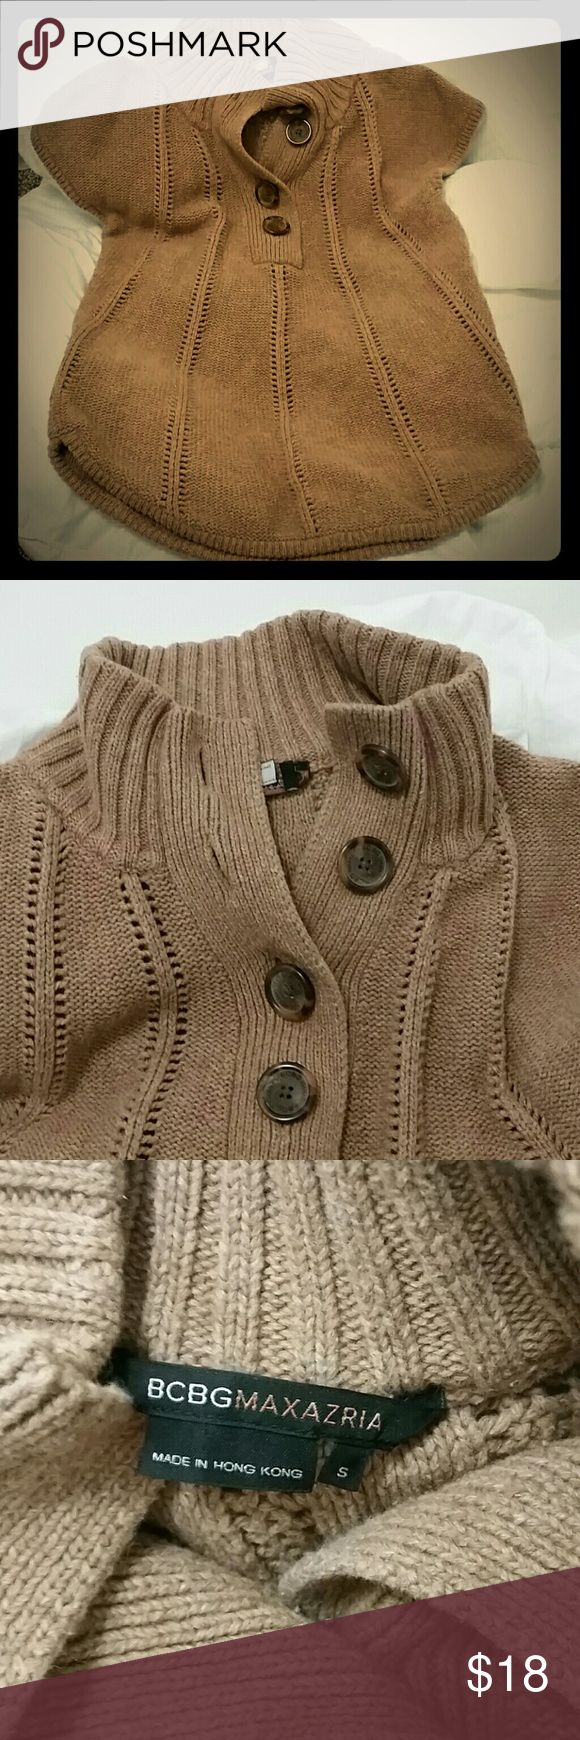 BCBG Max adorable short sleeve brown sweater Excellent condition cozy brown sweater with large (faux) tortoiseshell buttons. Super flattering lines. BCBGMaxAzria Sweaters